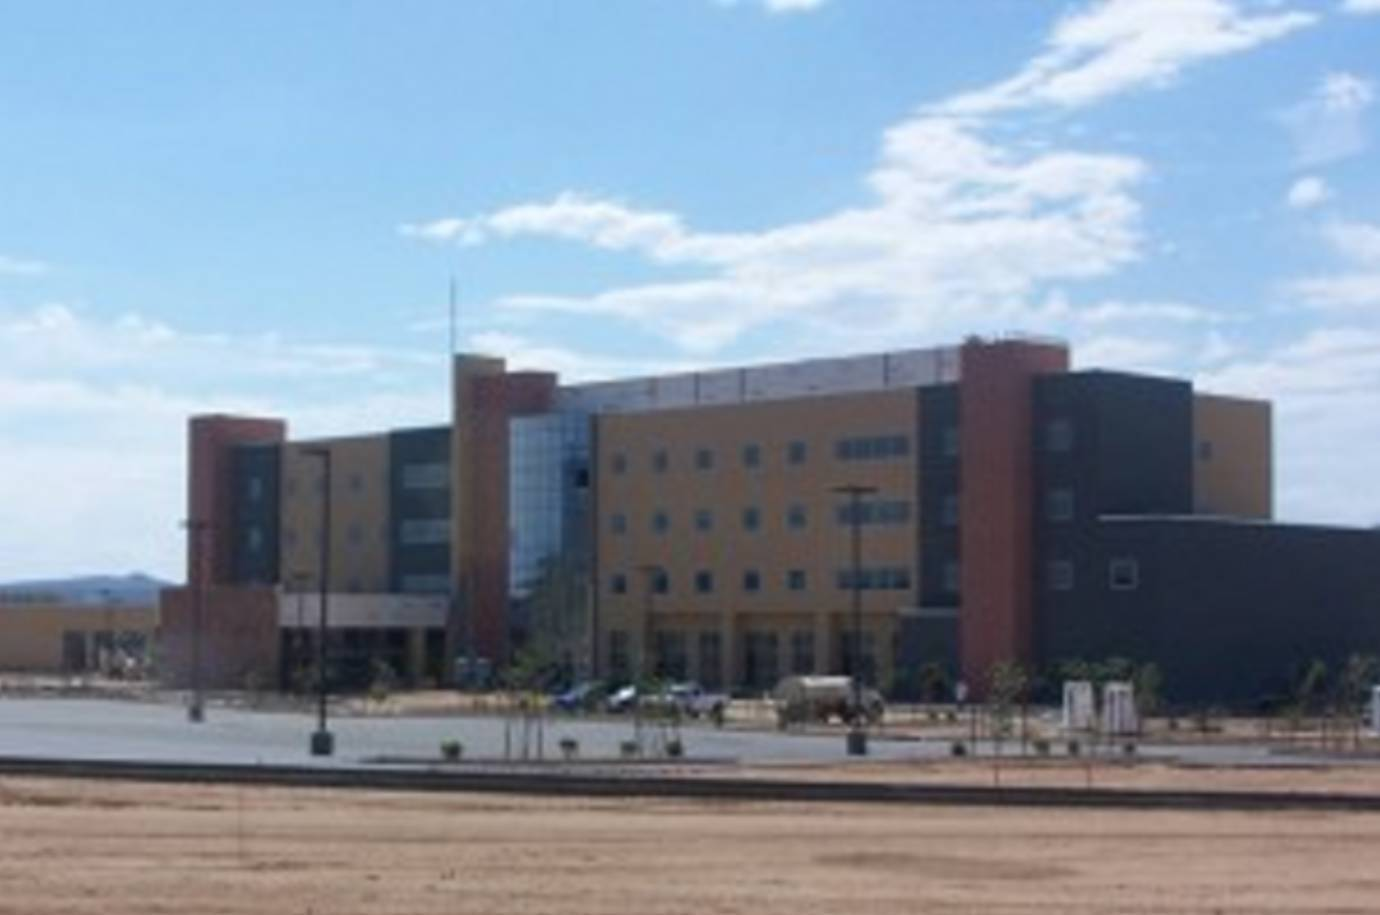 Experts installed custom glass fabrication at the commercial building in Lake Havasu City